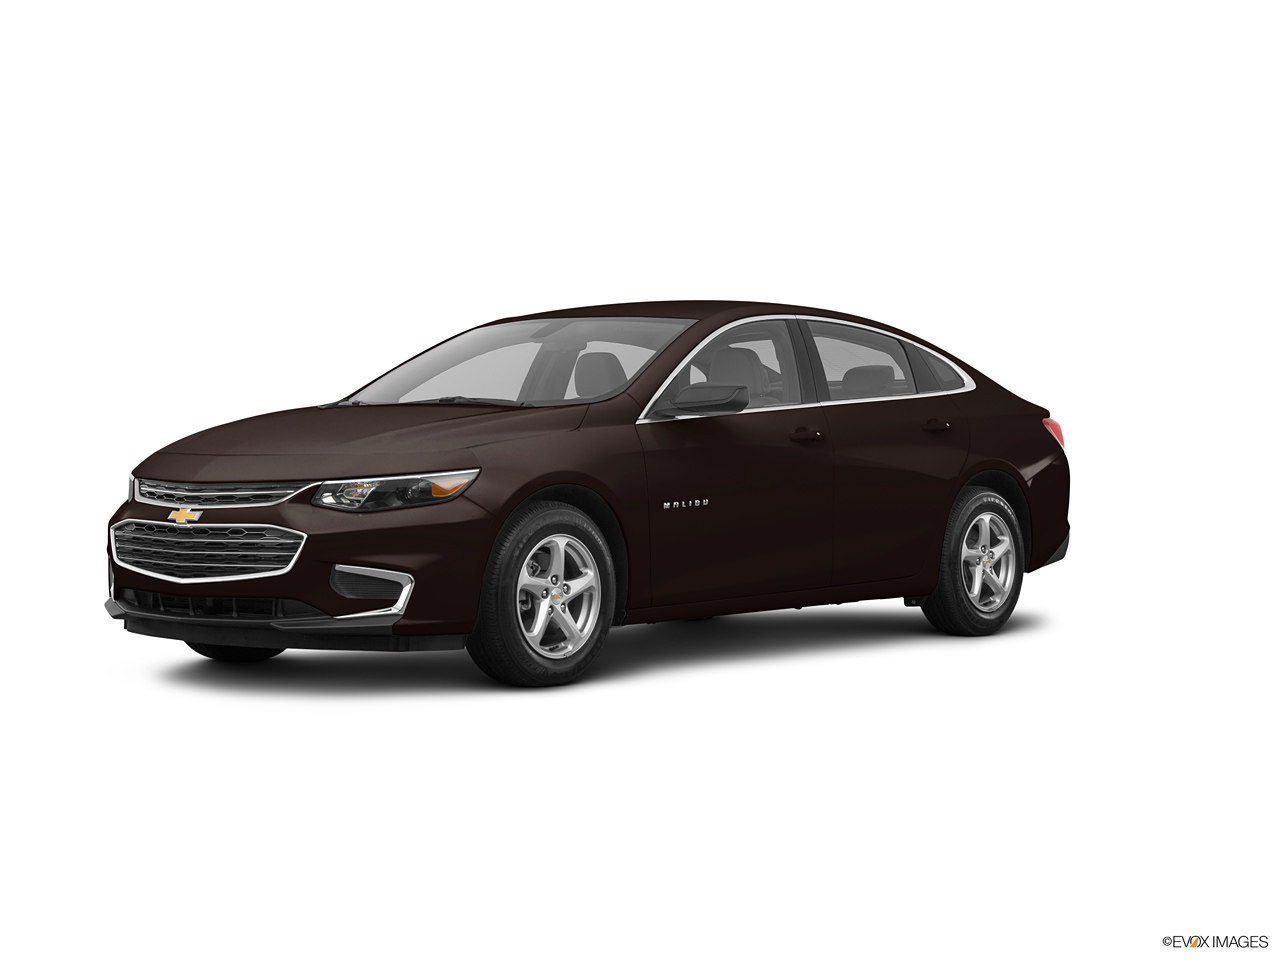 chevrolet malibu 2017 2 5l ltz in saudi arabia new car prices specs reviews photos yallamotor. Black Bedroom Furniture Sets. Home Design Ideas